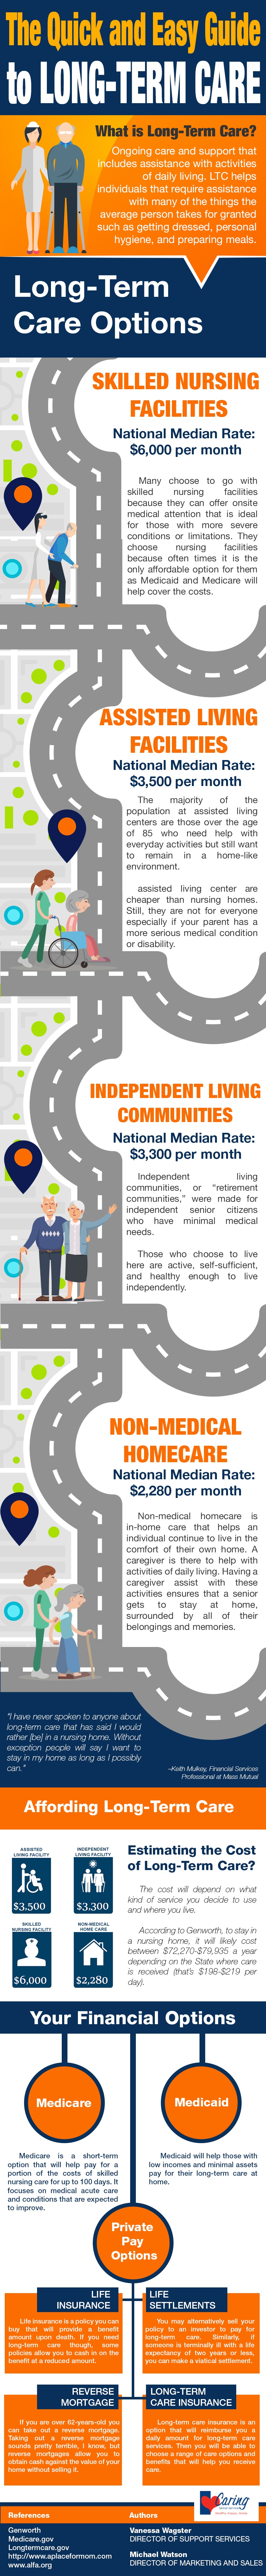 Quick and easy guide to long-term care infographic